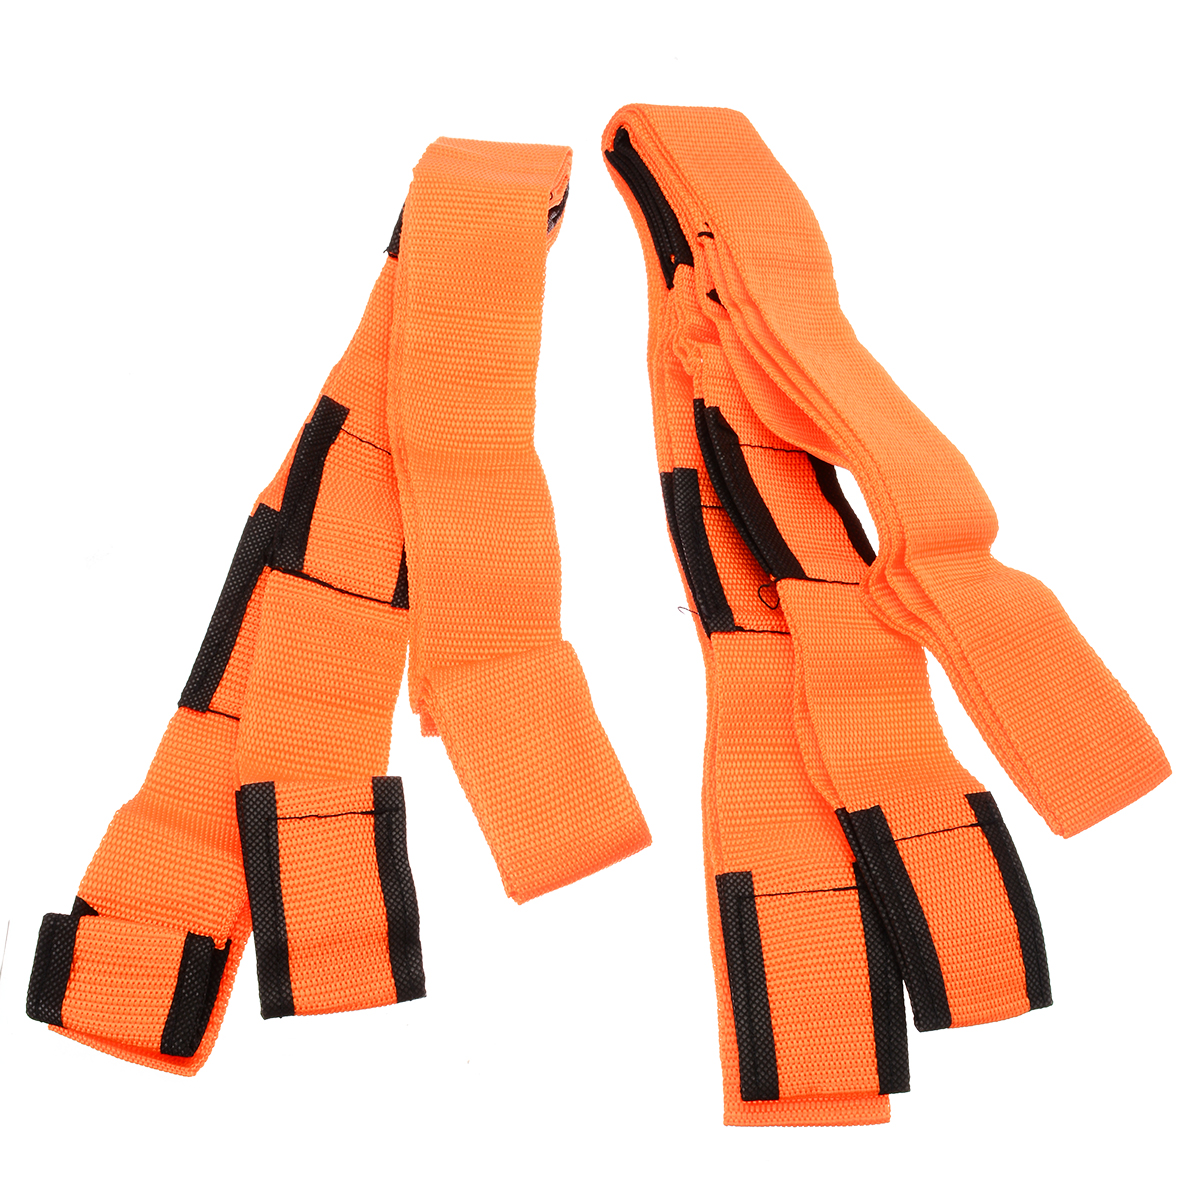 4pcs Furniture Lifting Moving Straps Harnesses Heavy Duty Furniture Cargo Movers Lifter Convenient Shoulder Wrist Aid Belt Tool